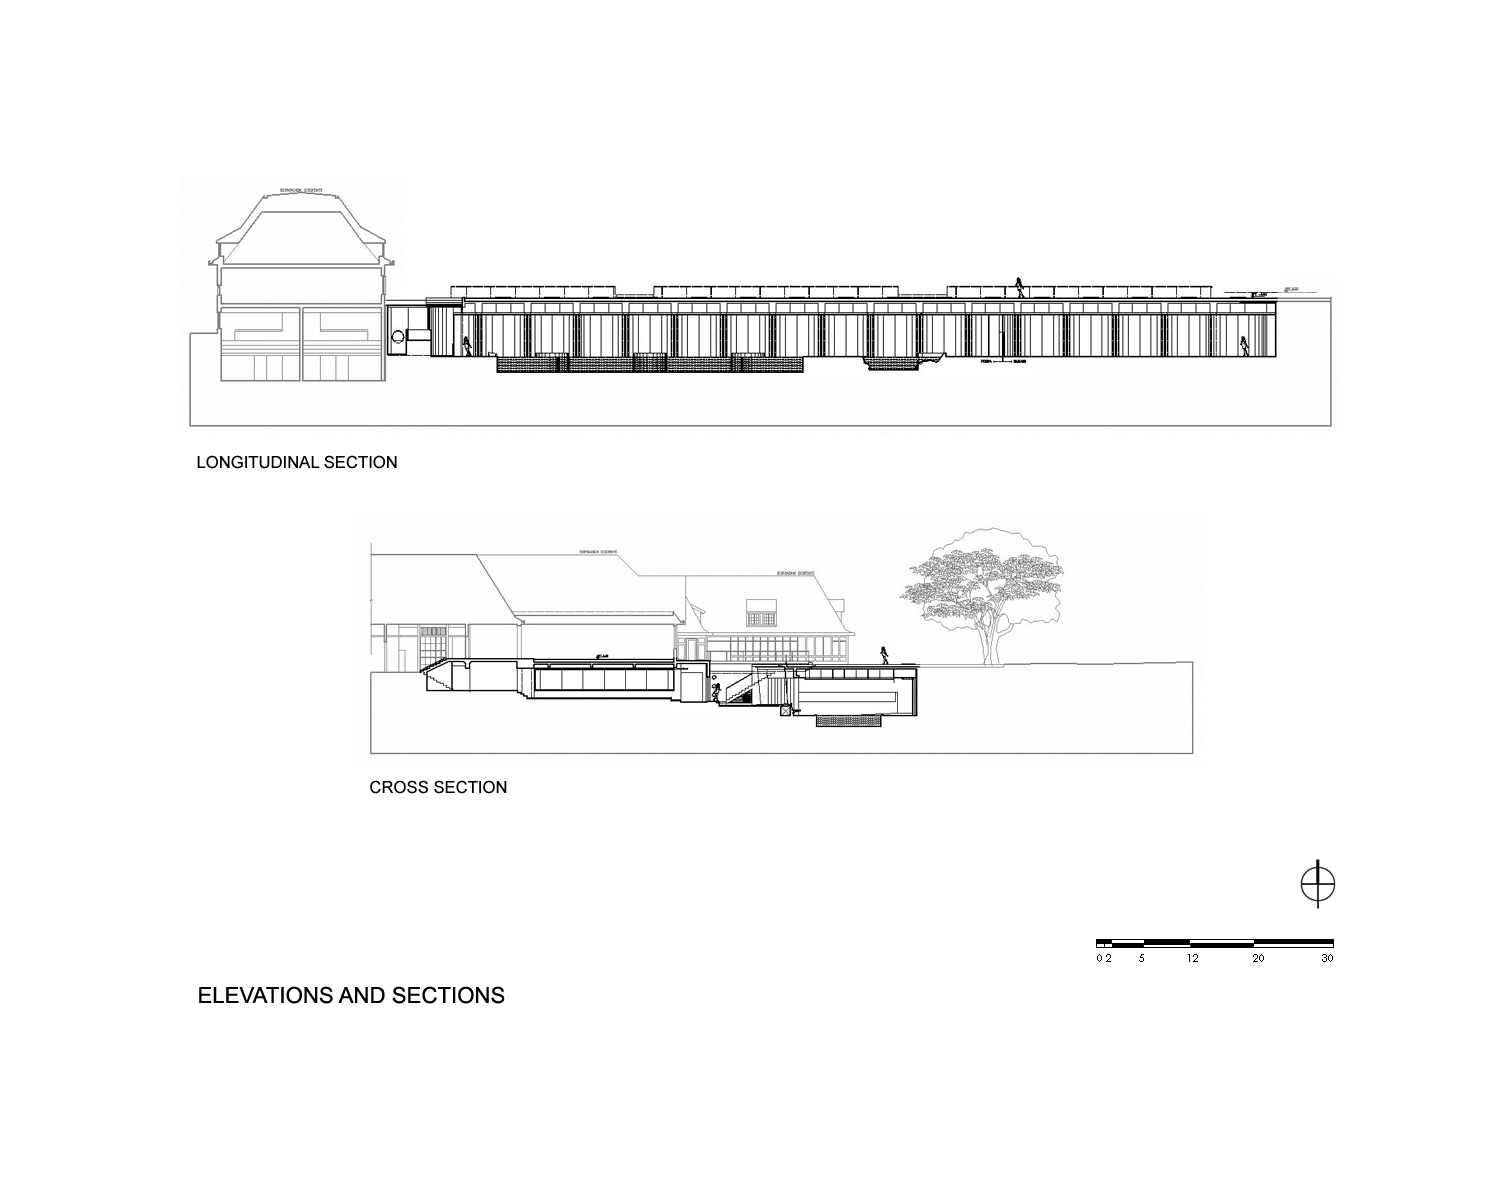 Ping Mall Plan Elevation Section : P w c spa fitness center by plan arquitectos